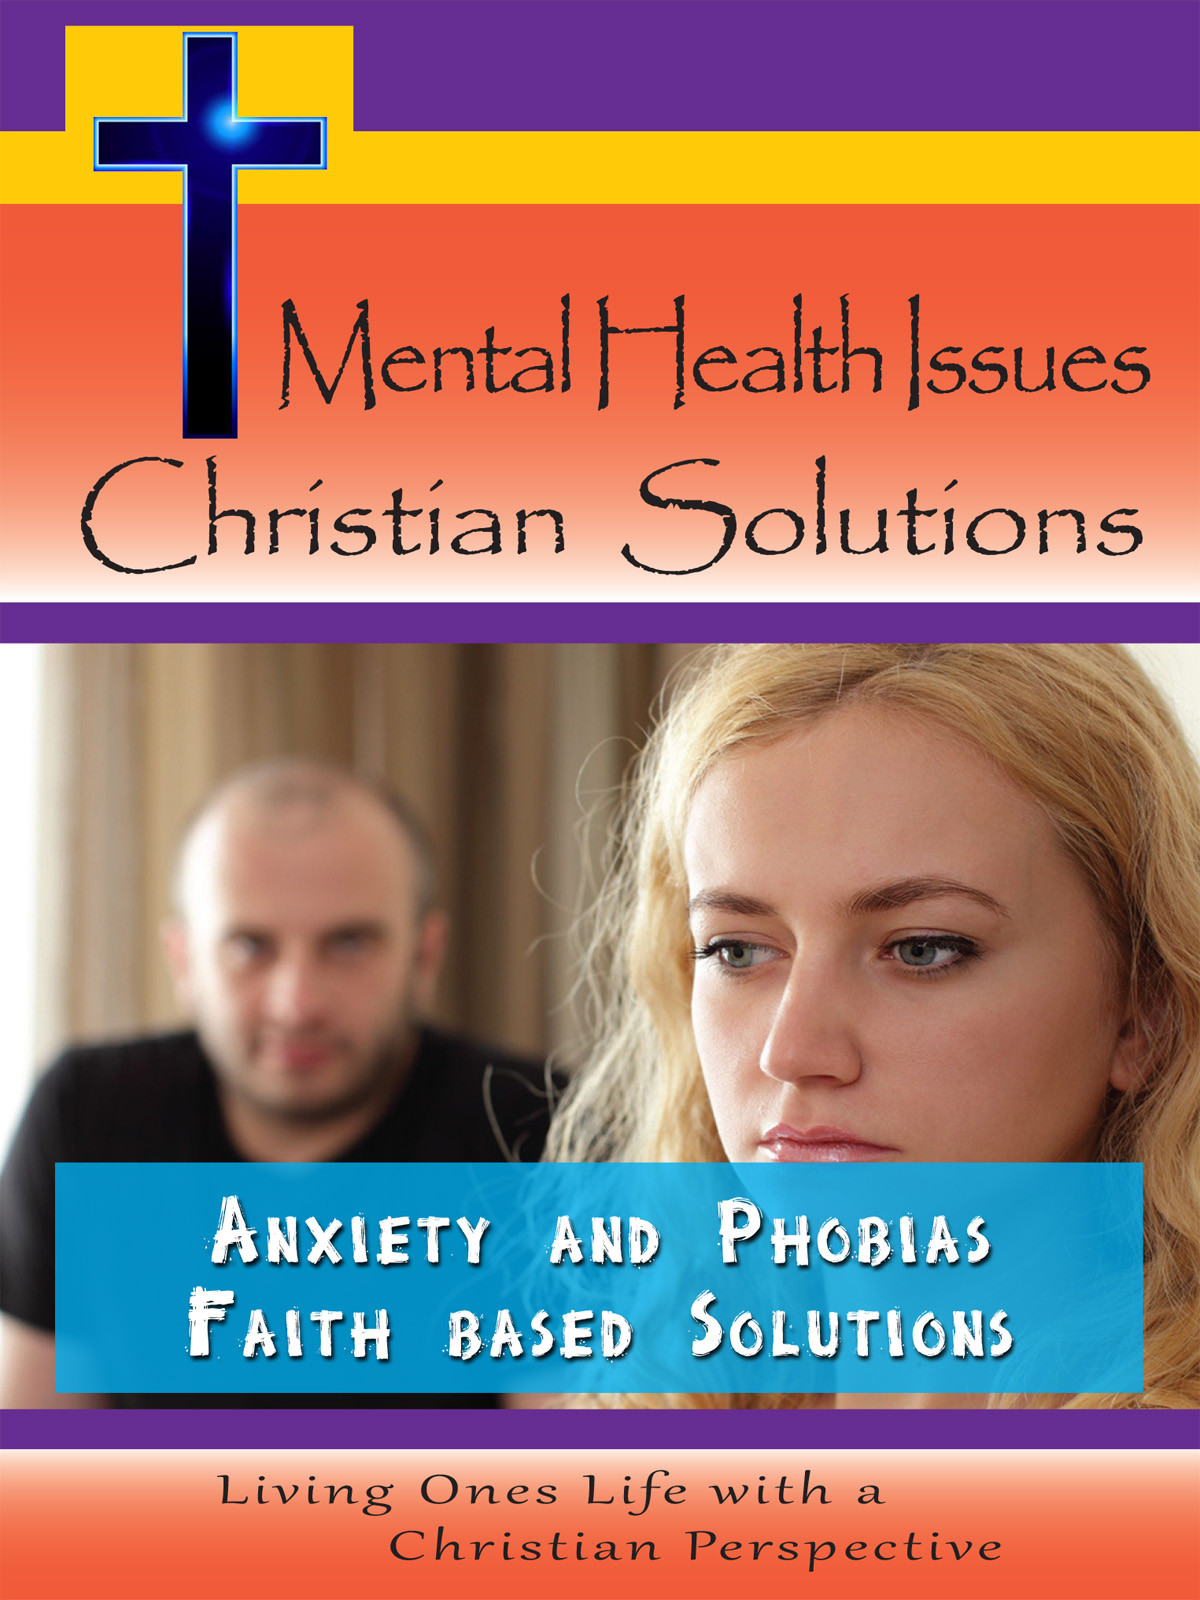 CH10009 - Anxiety and Phobias Faith Based Solutions